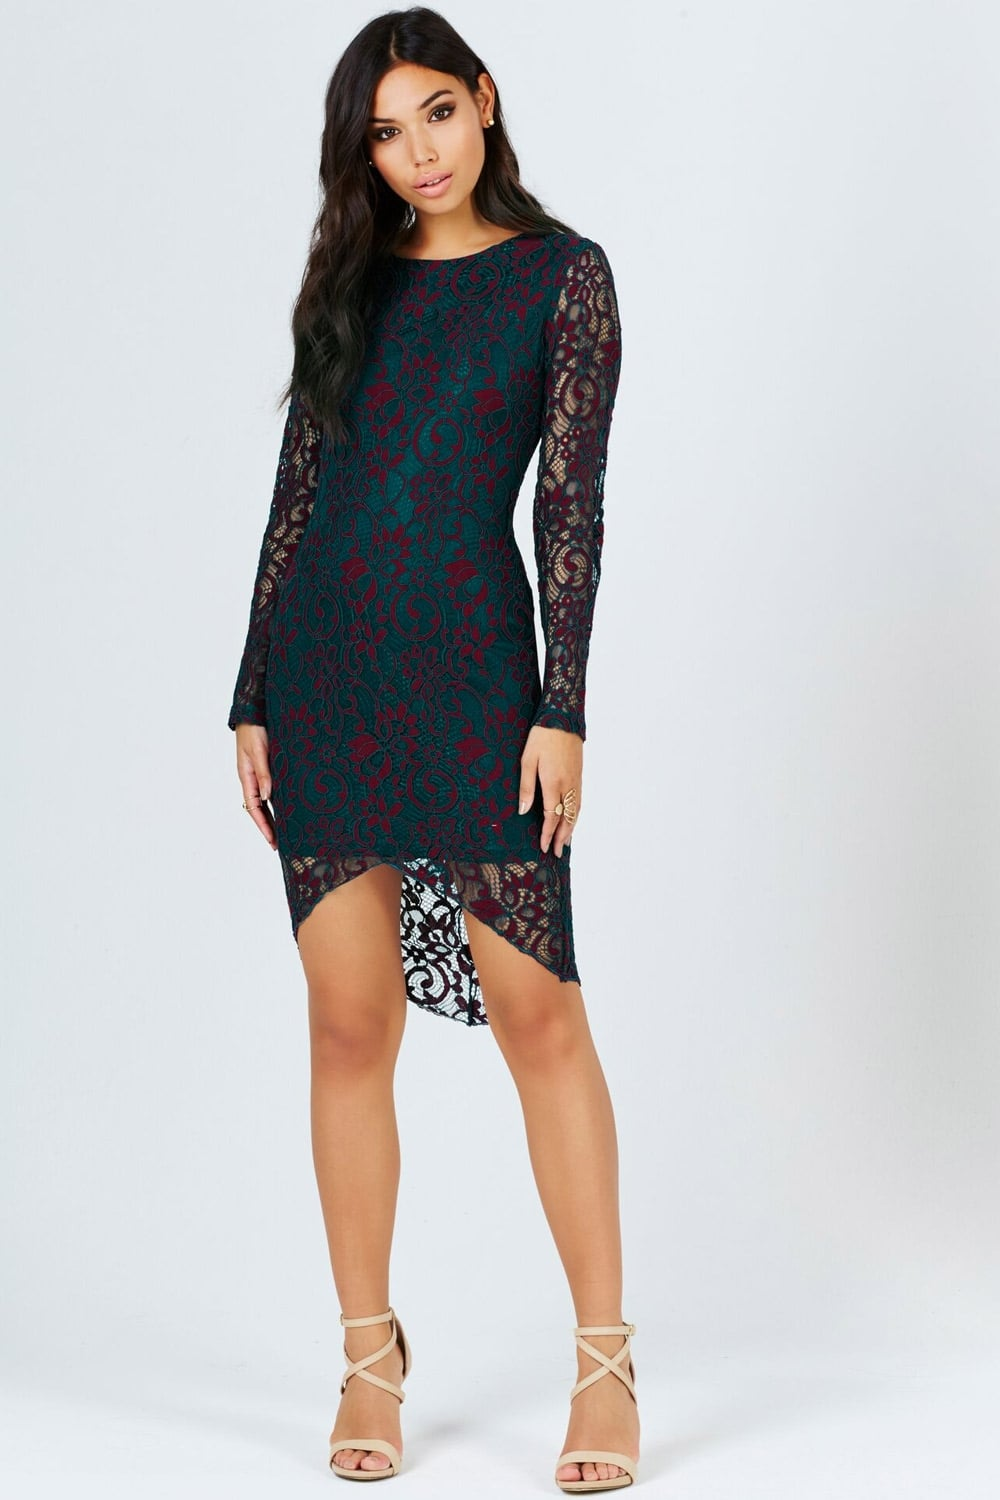 Girls On Film Teal And Berry Lace Bodycon Dress Girls On